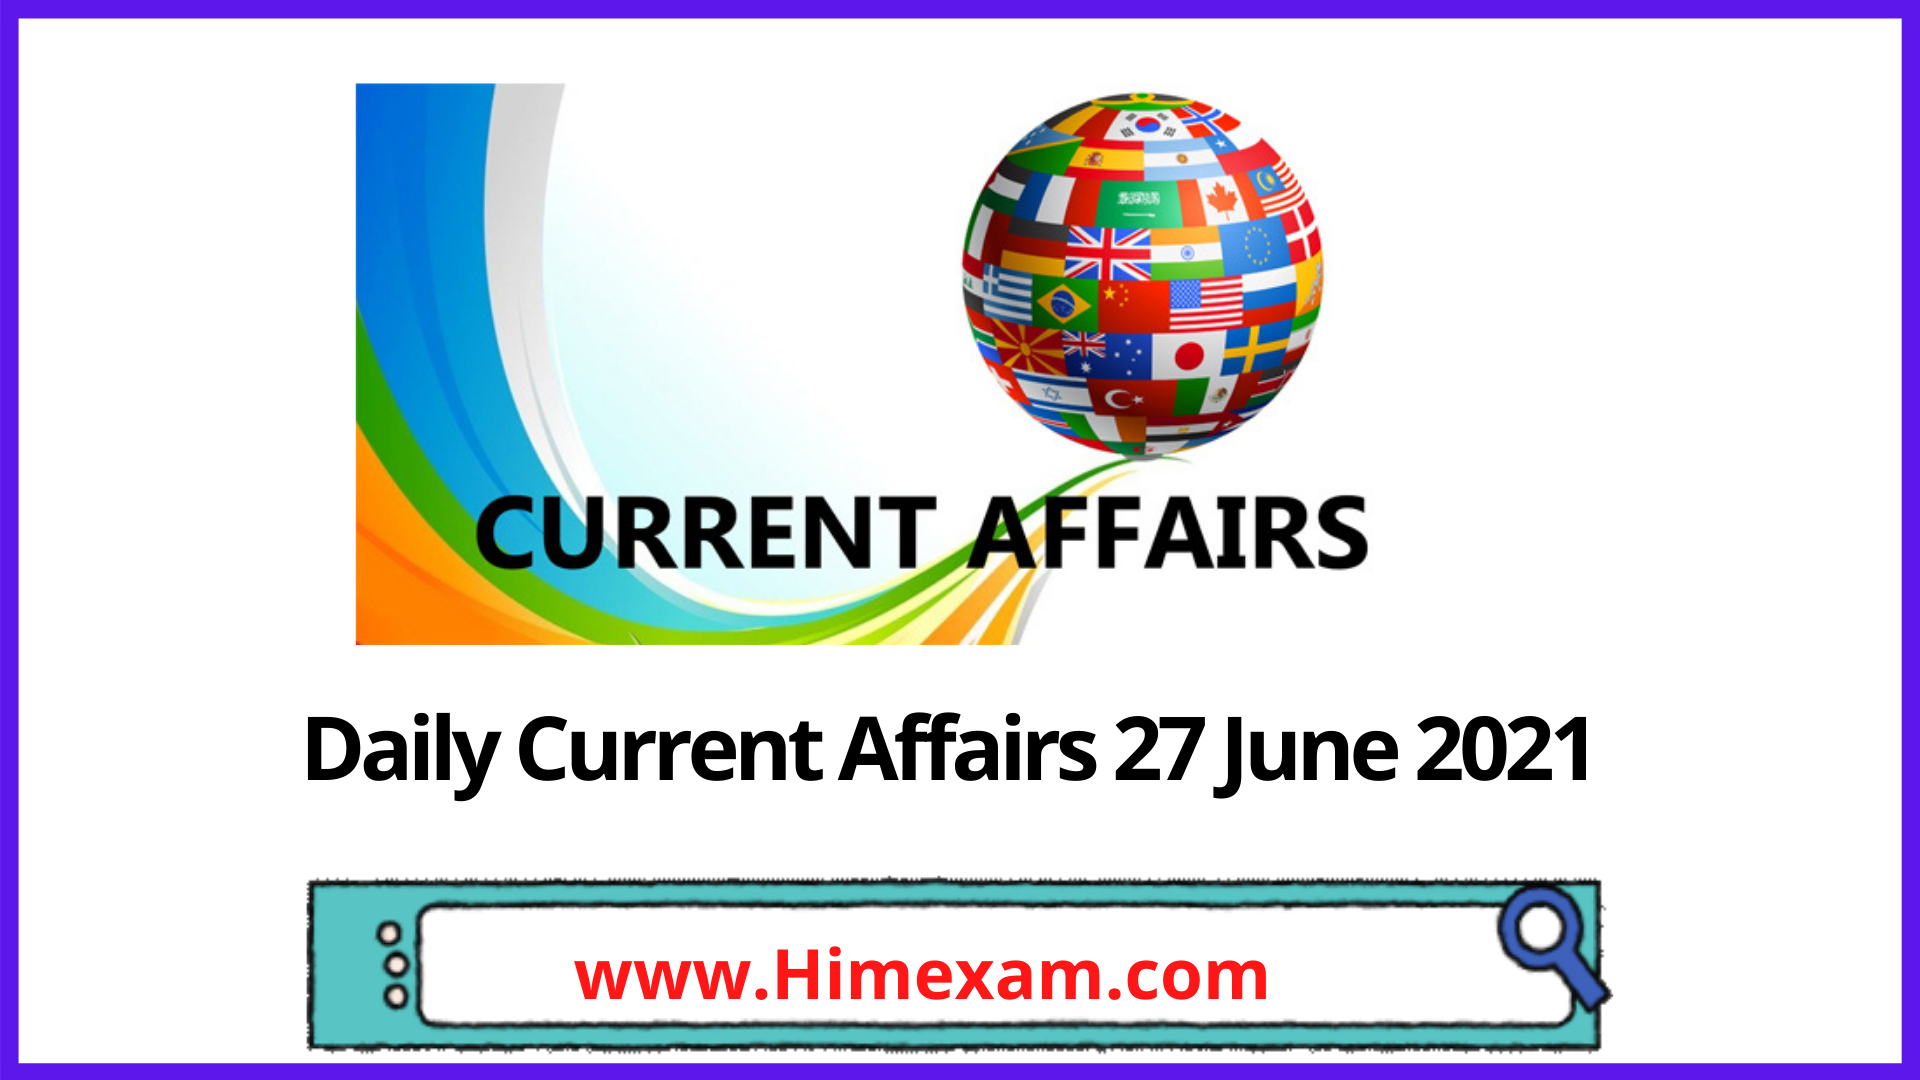 Daily Current Affairs 27 June 2021 In Hindi